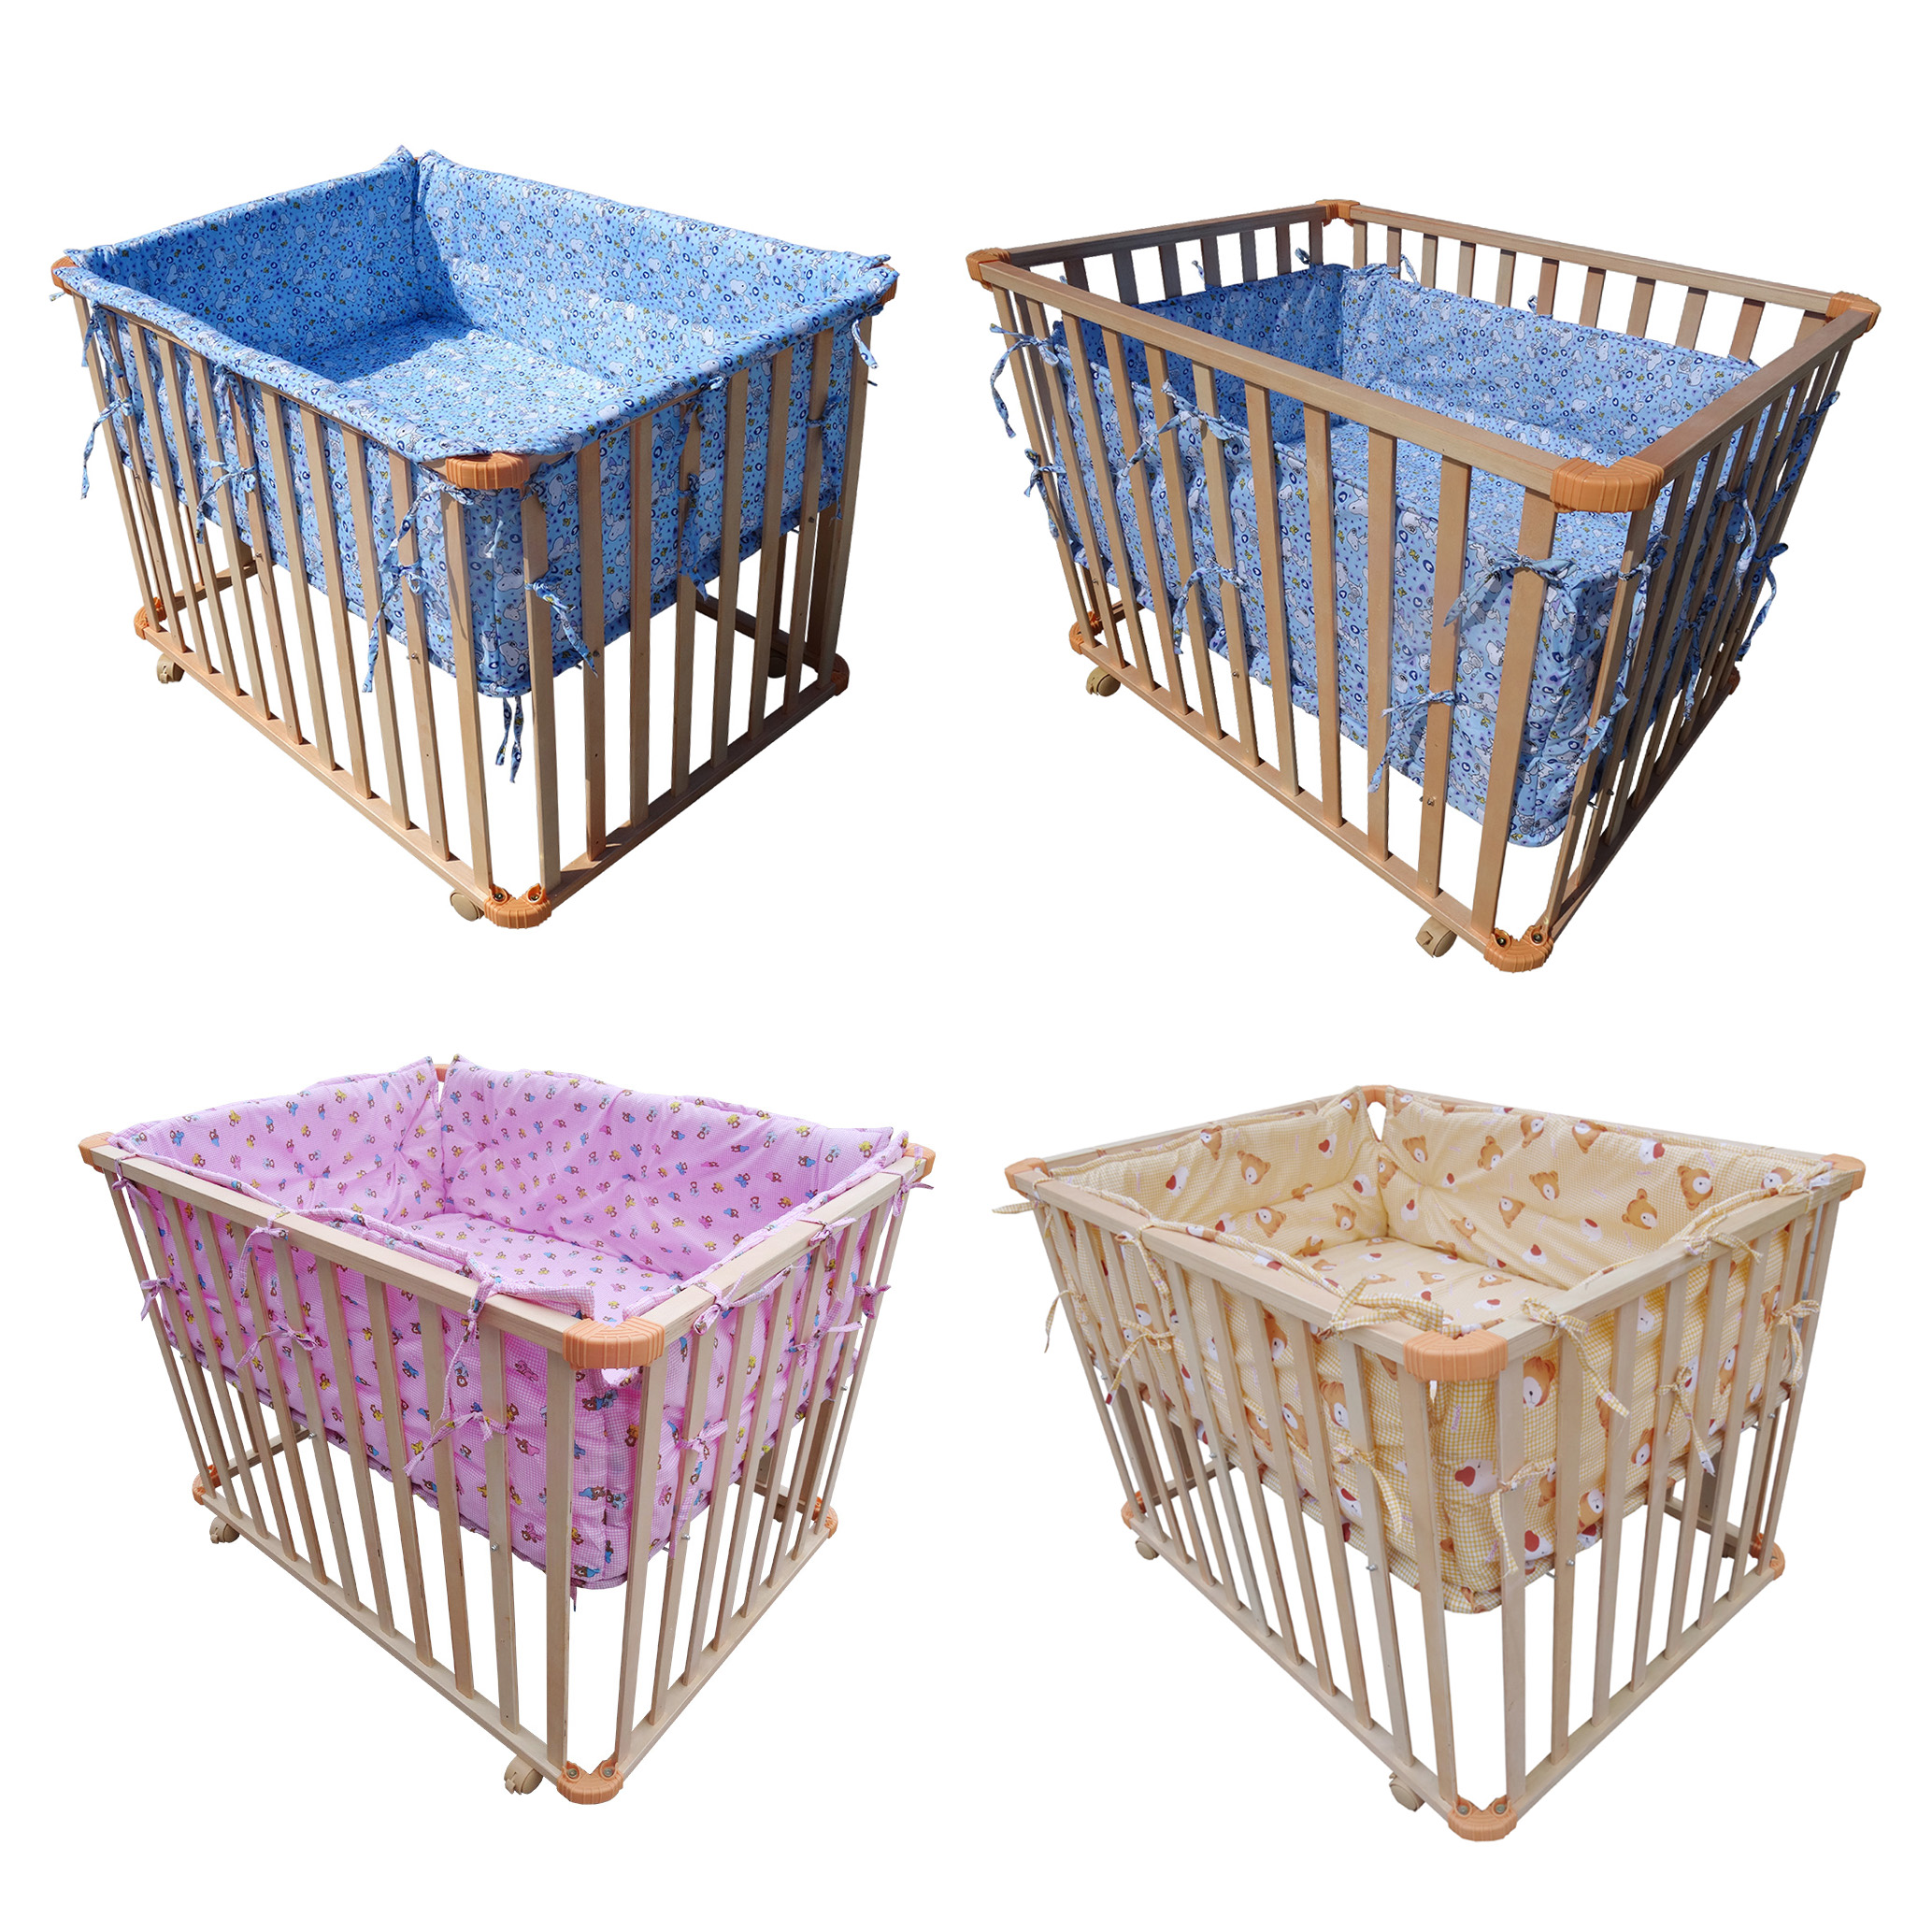 foxhunter height adjustable baby playpen play pen cot bed cushion  - foxhunter height adjustable baby playpen play pen cot bed cushion wooden side